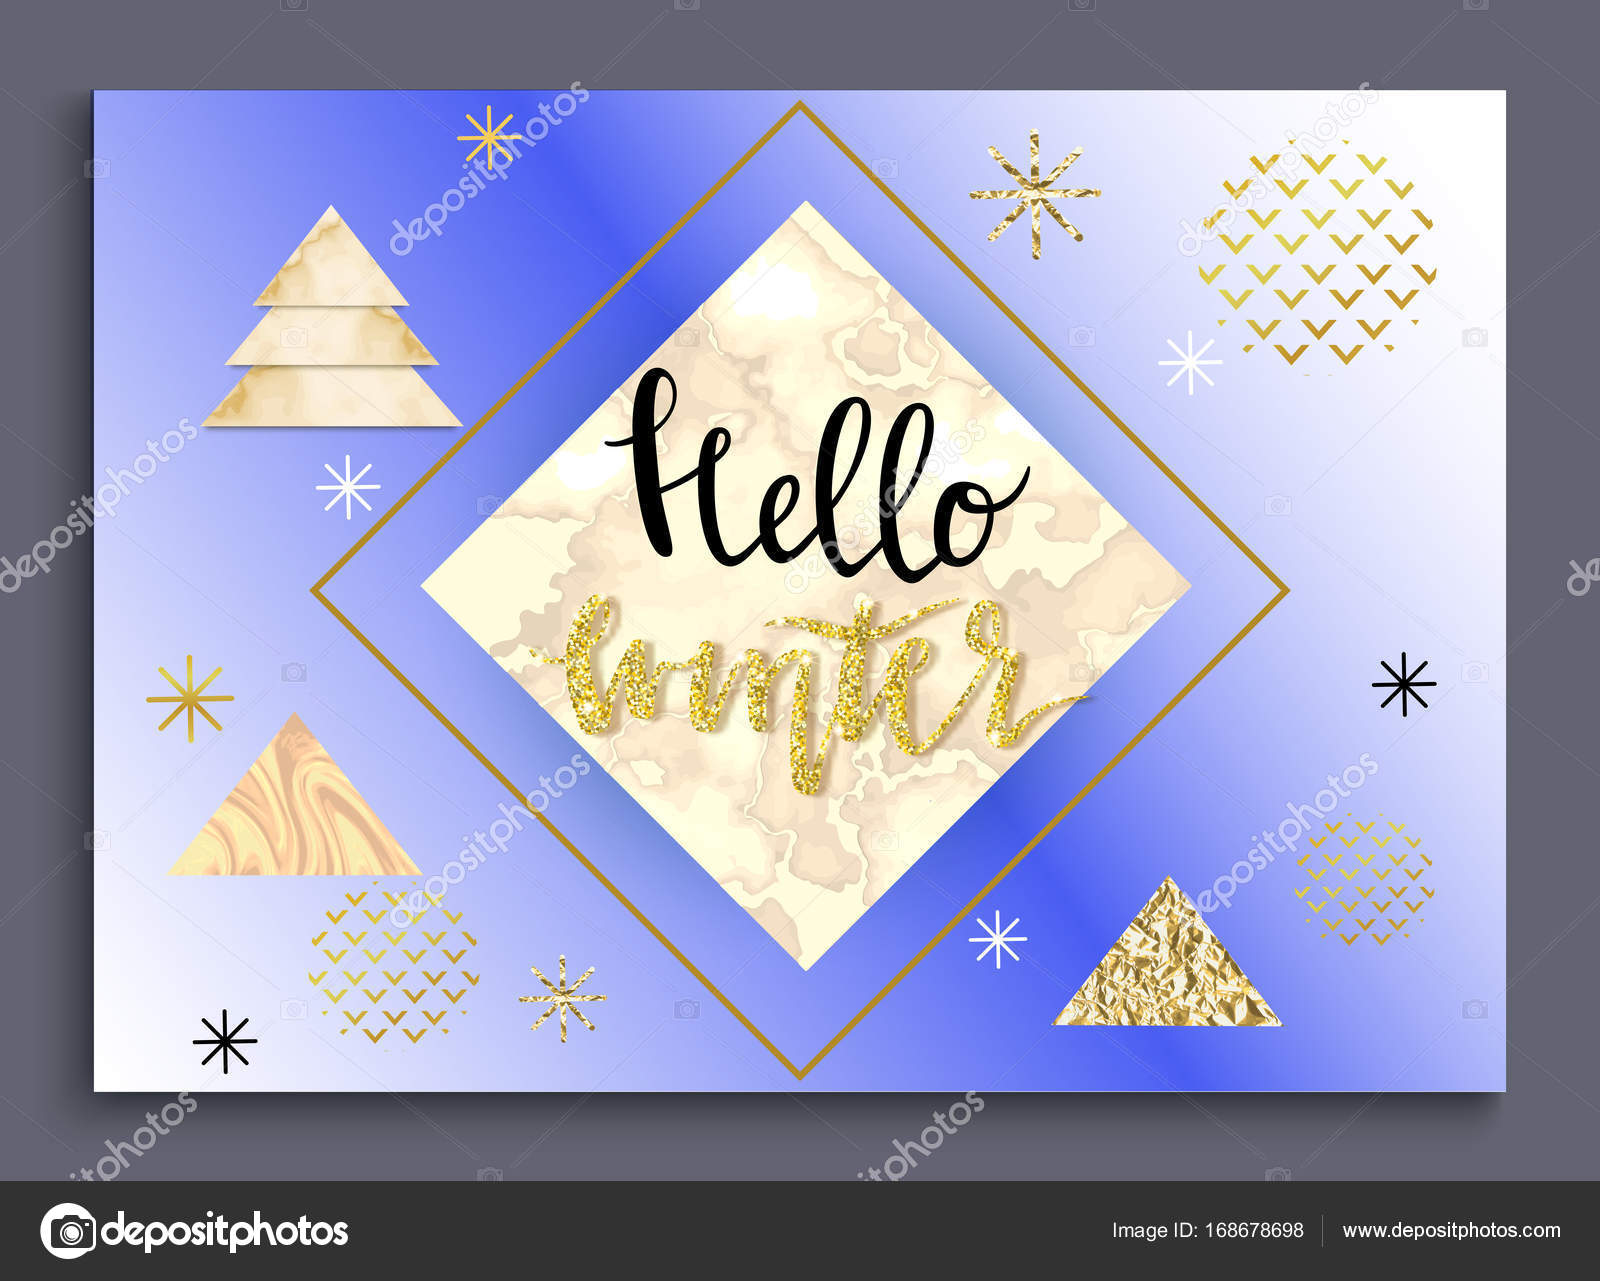 Hello Winter Greeting Card In Trendy Style With Lettering Colorful